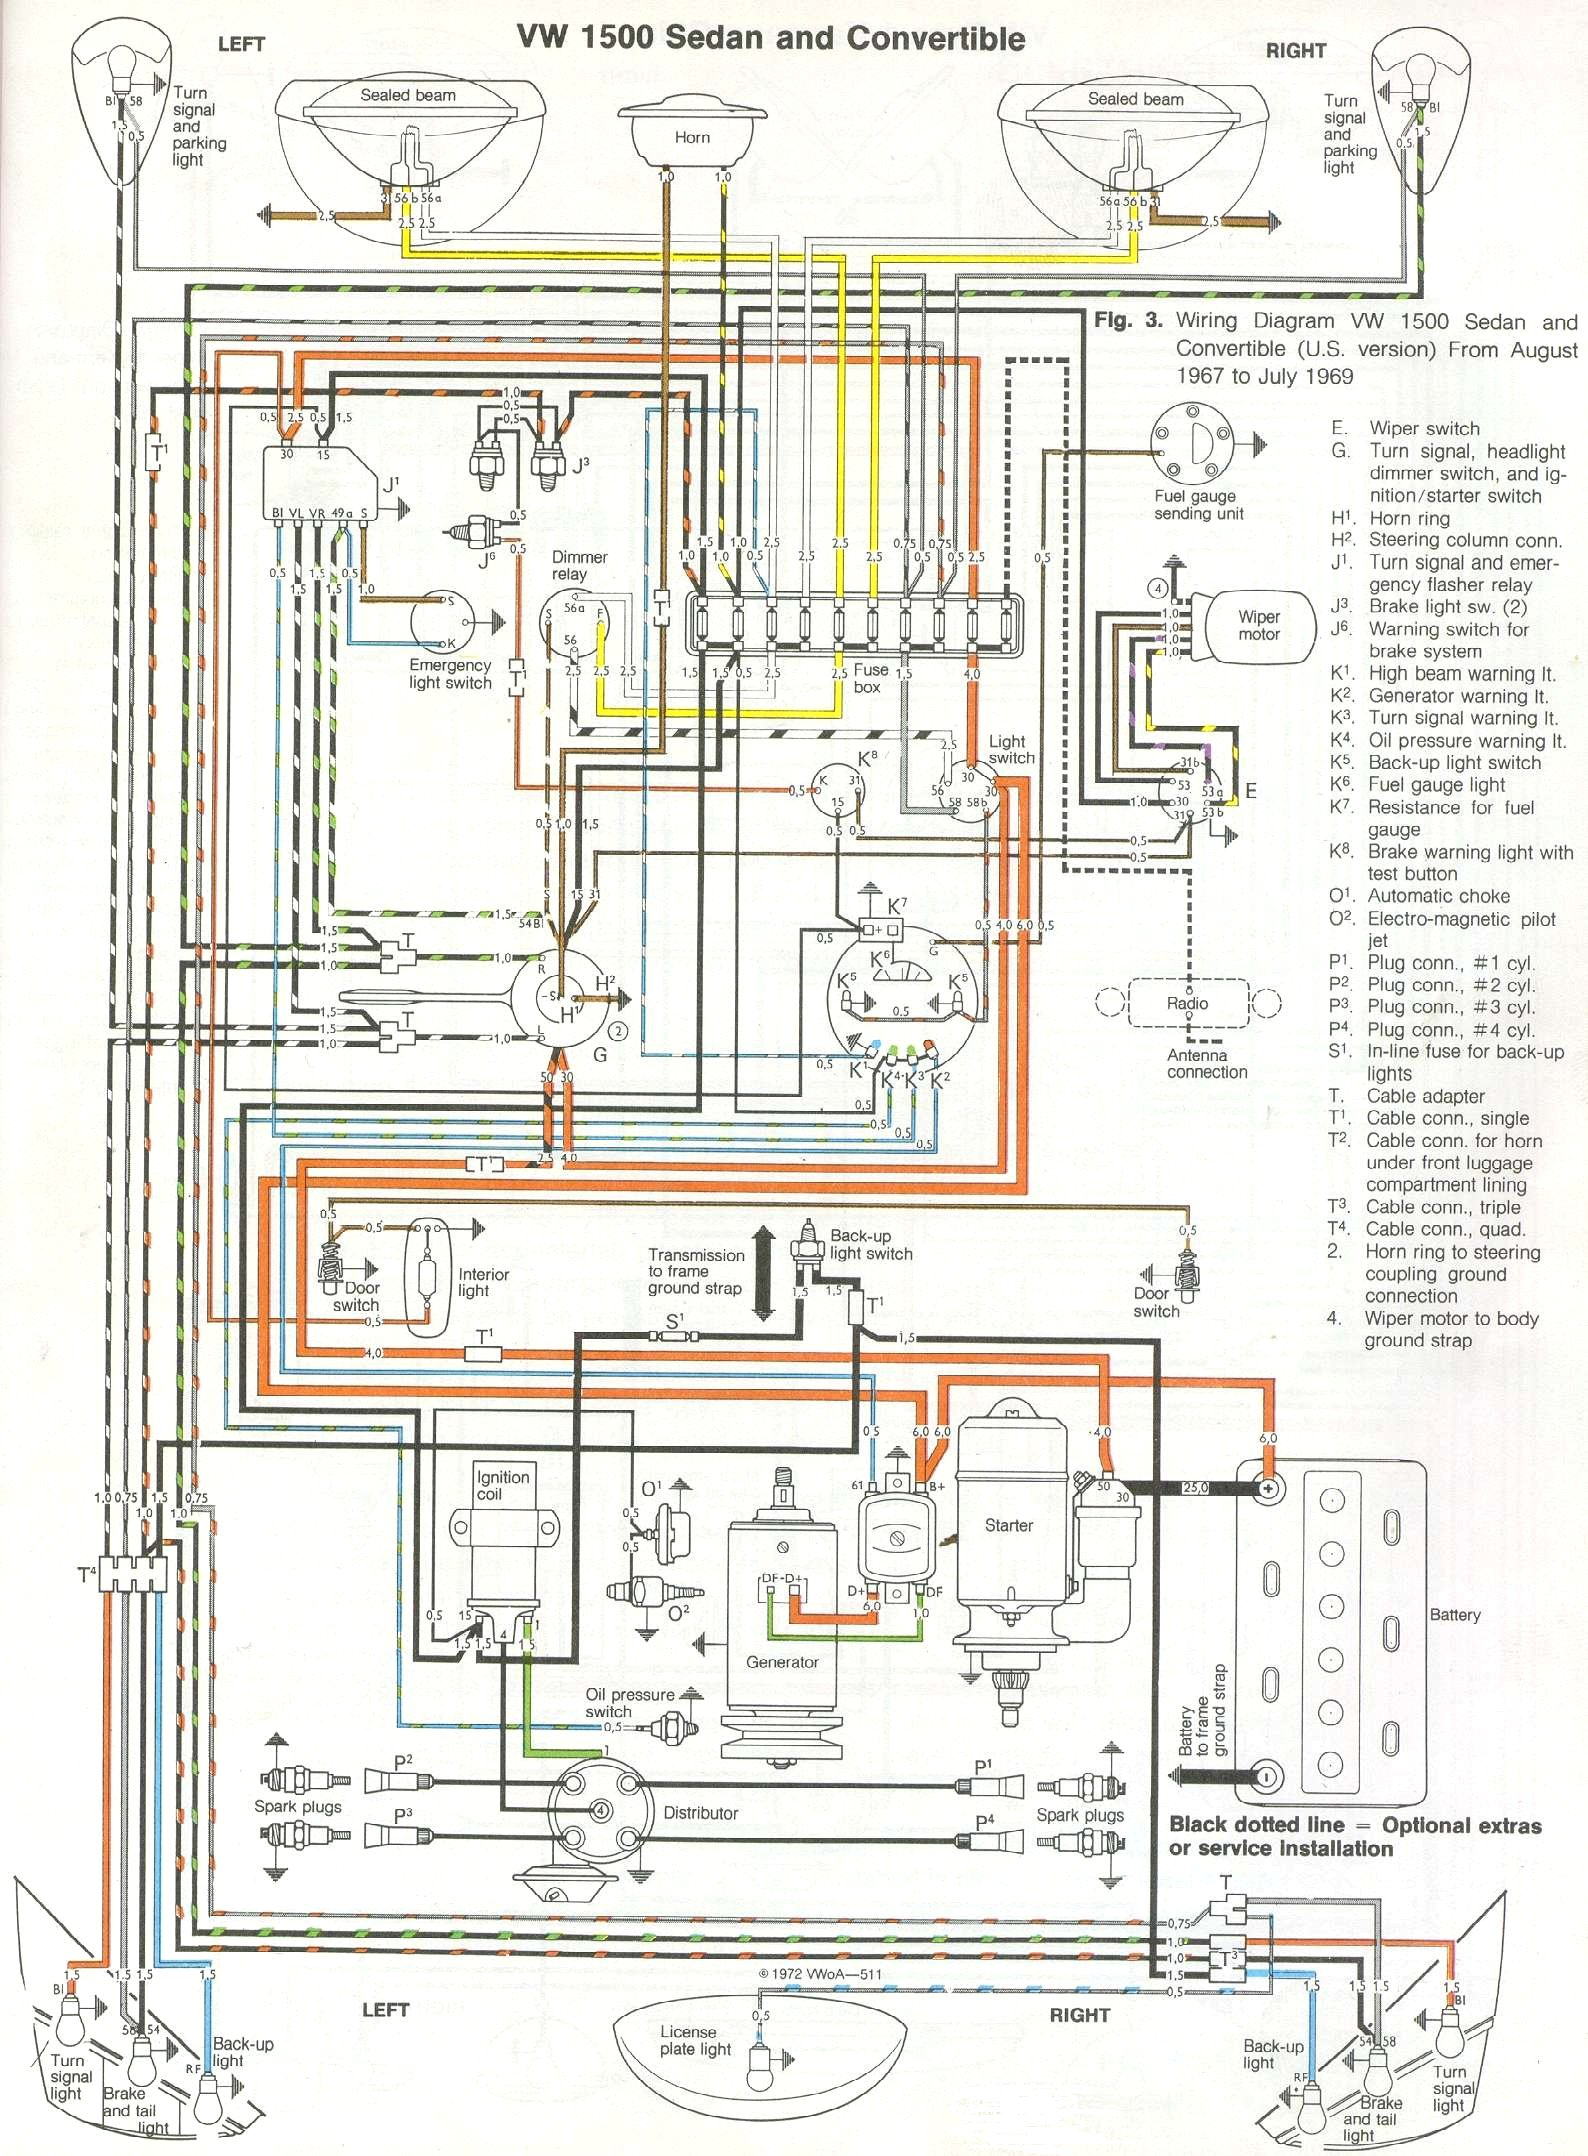 bug_6869 thesamba com type 1 wiring diagrams find wiring diagram for 87 ford f 150 at metegol.co